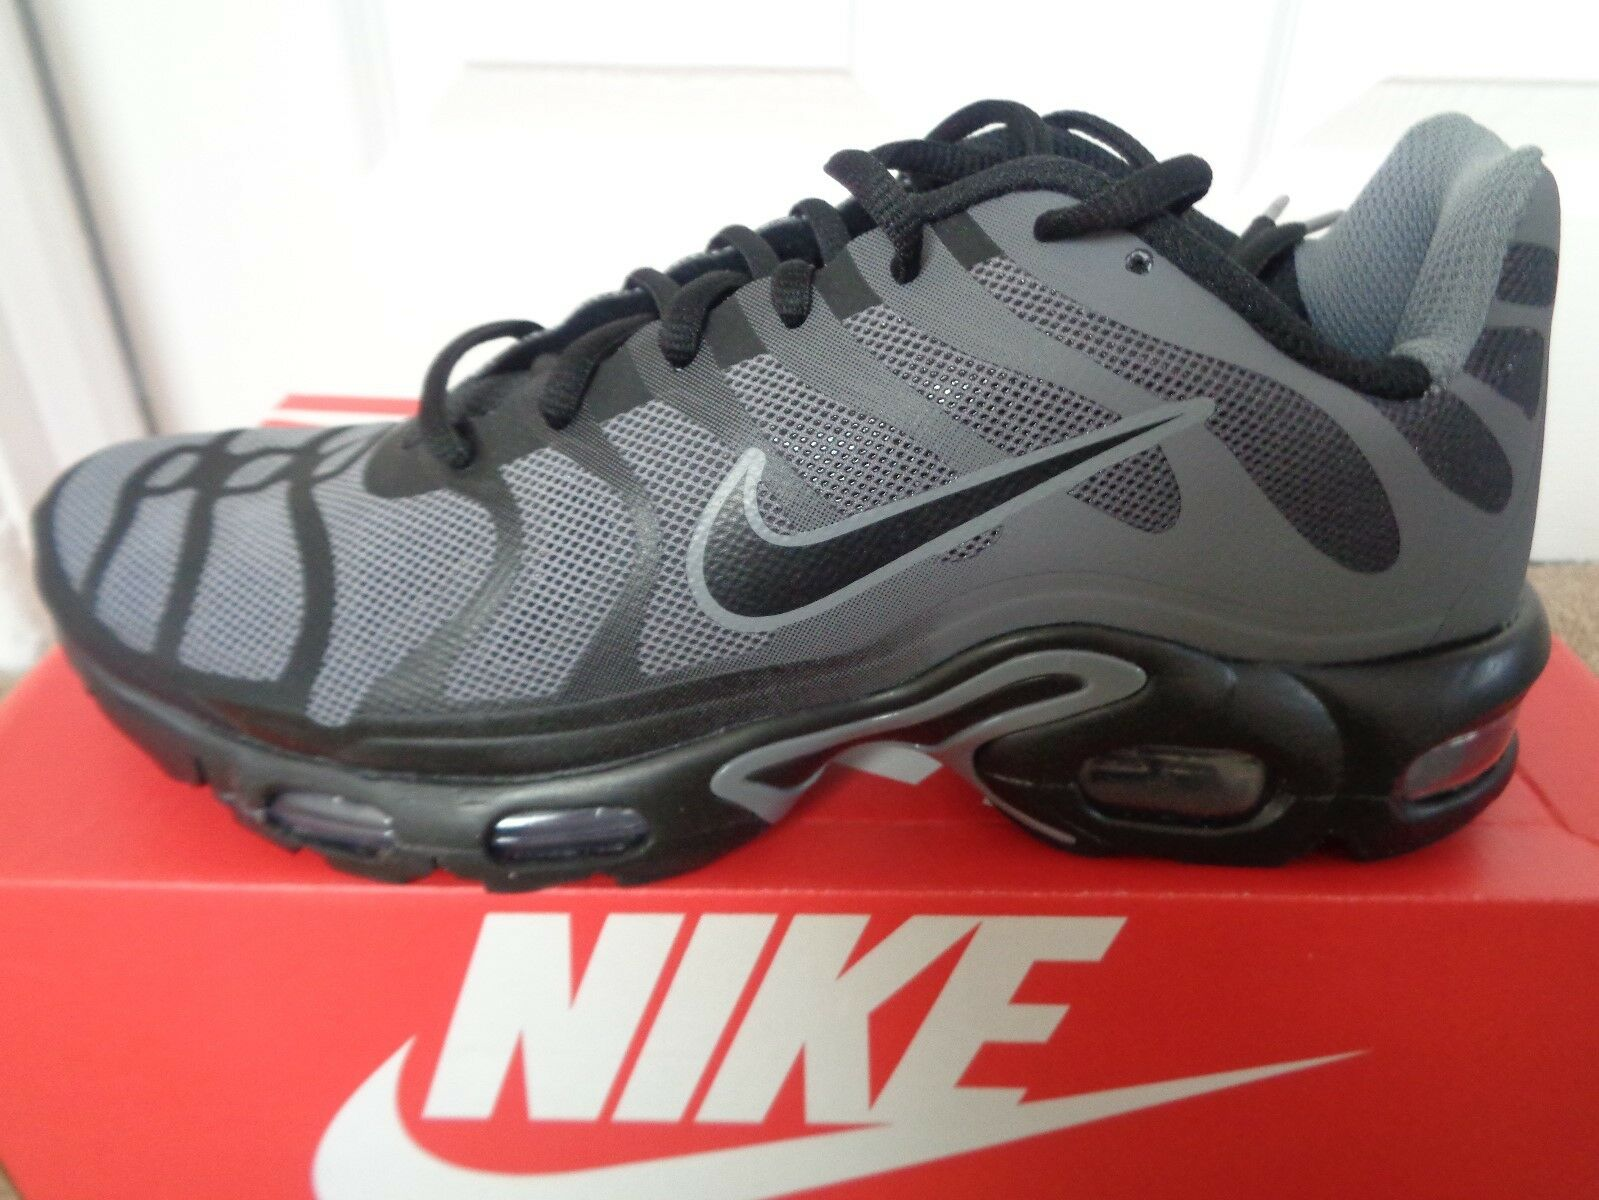 Nike Air max plus fuse 483553 homme  trainers sneakers 483553 fuse 002 uk 7 eu 41 us 8 NEW+BOX a84f2f